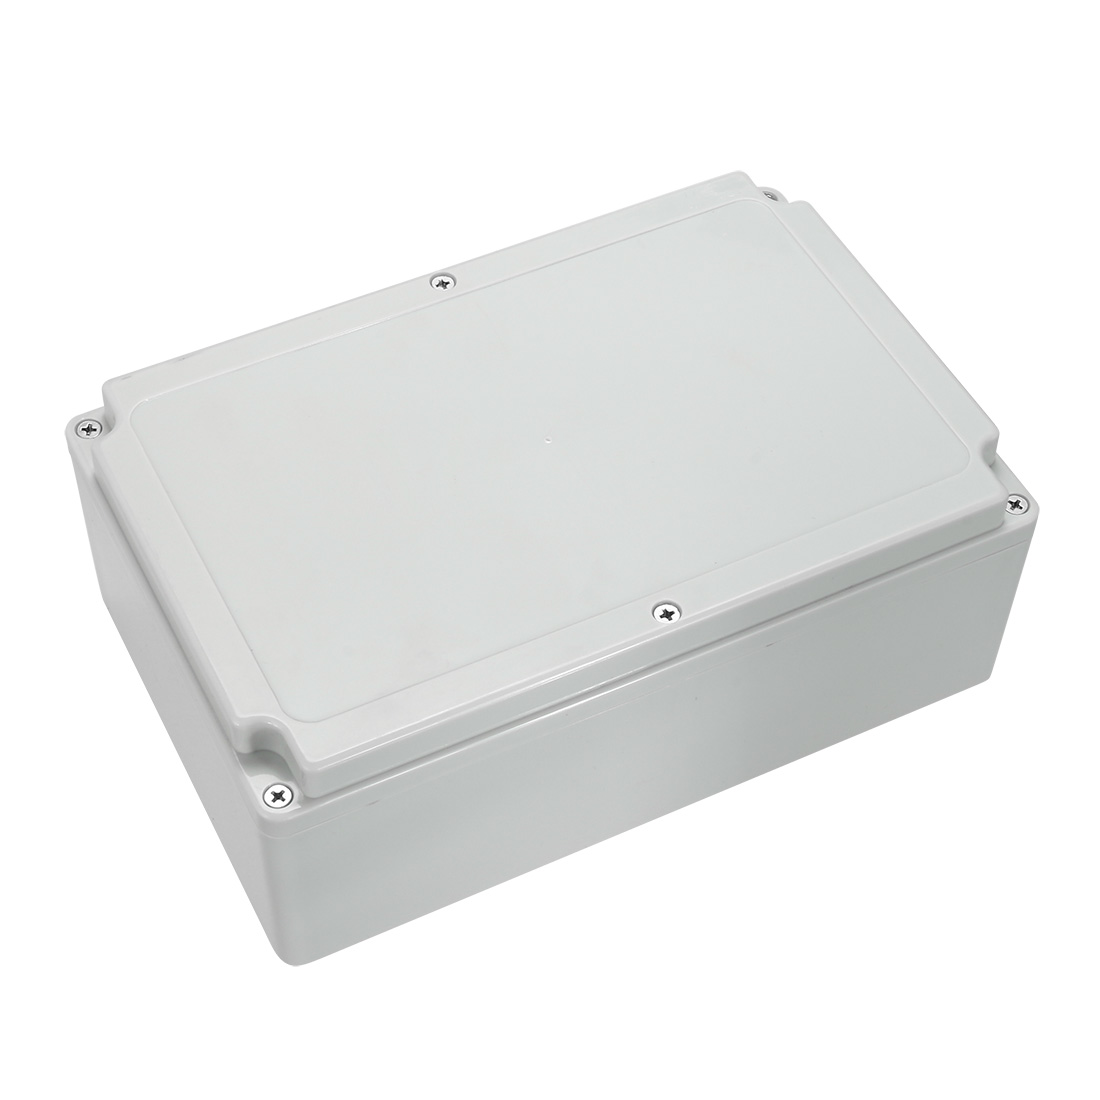 """Unique Bargains 9.06""""x5.91""""x3.35""""(230mmx150mmx85mm) ABS Junction Box Universal Project Enclosure - image 5 of 5"""